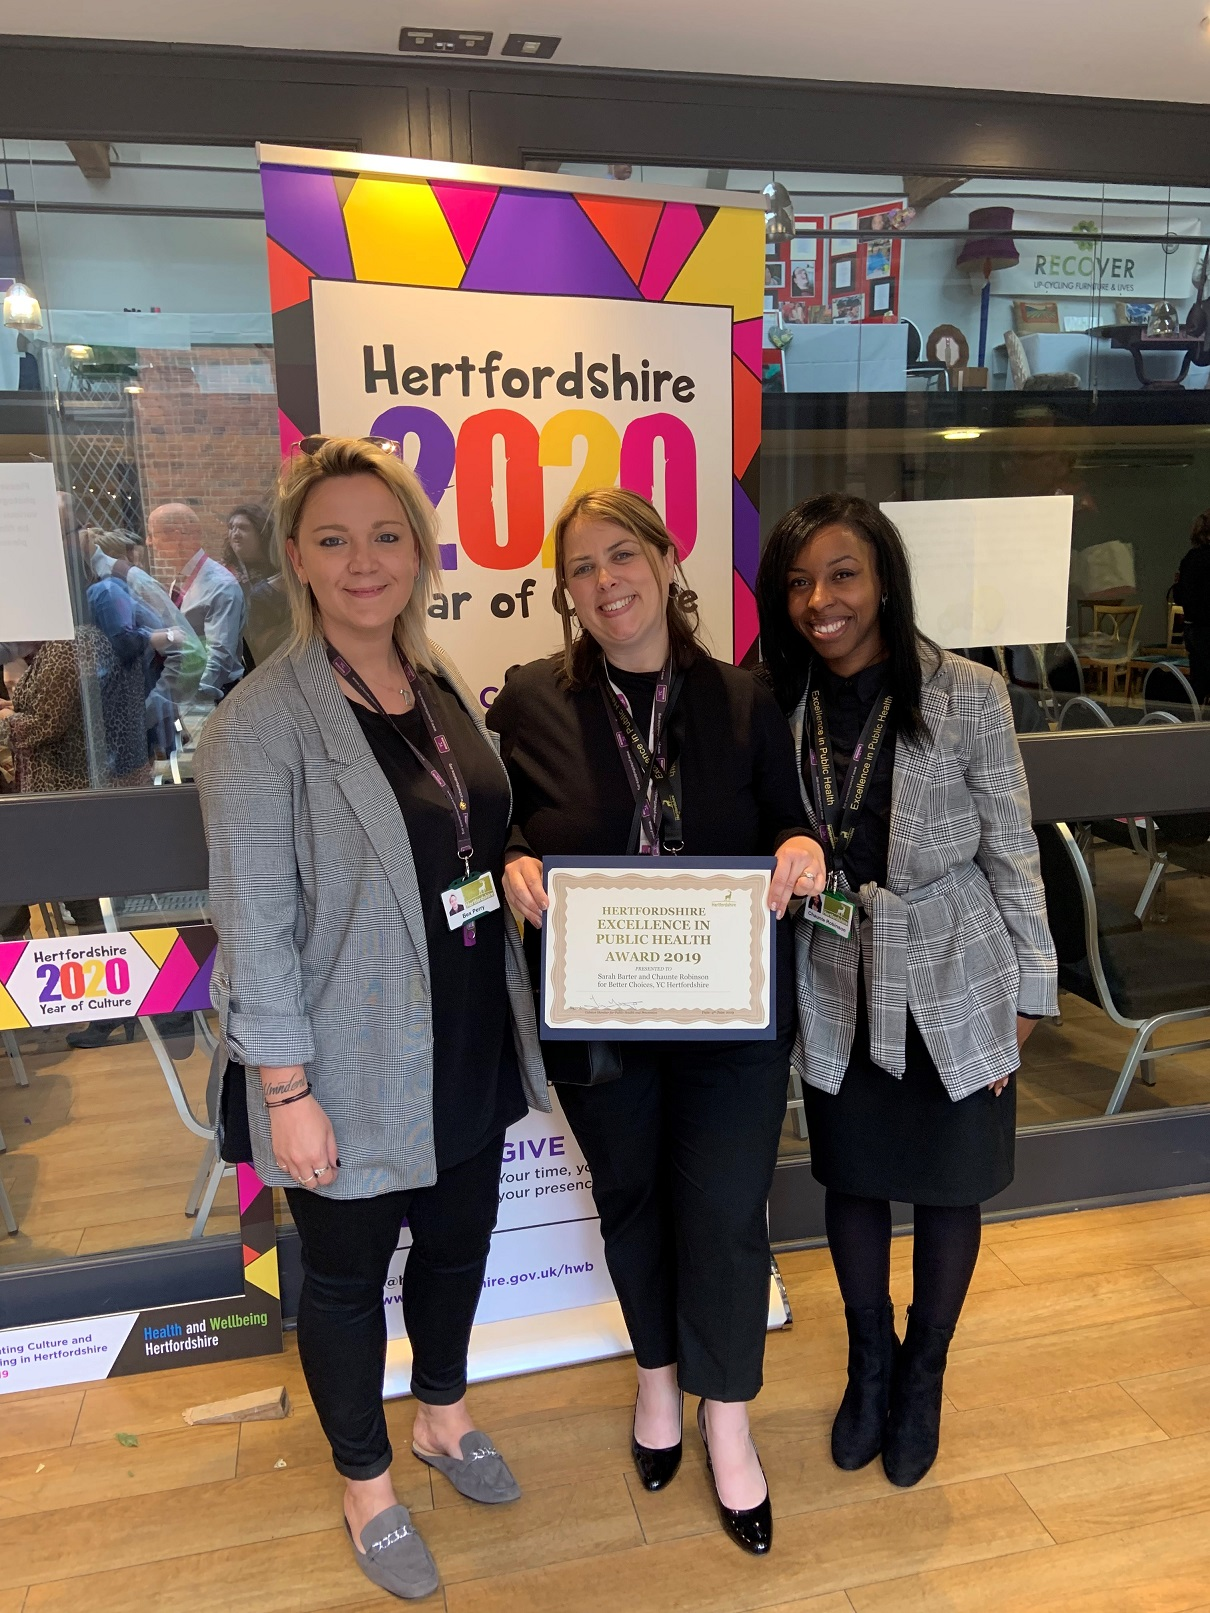 Youth Workers win Public Health Awards 2019